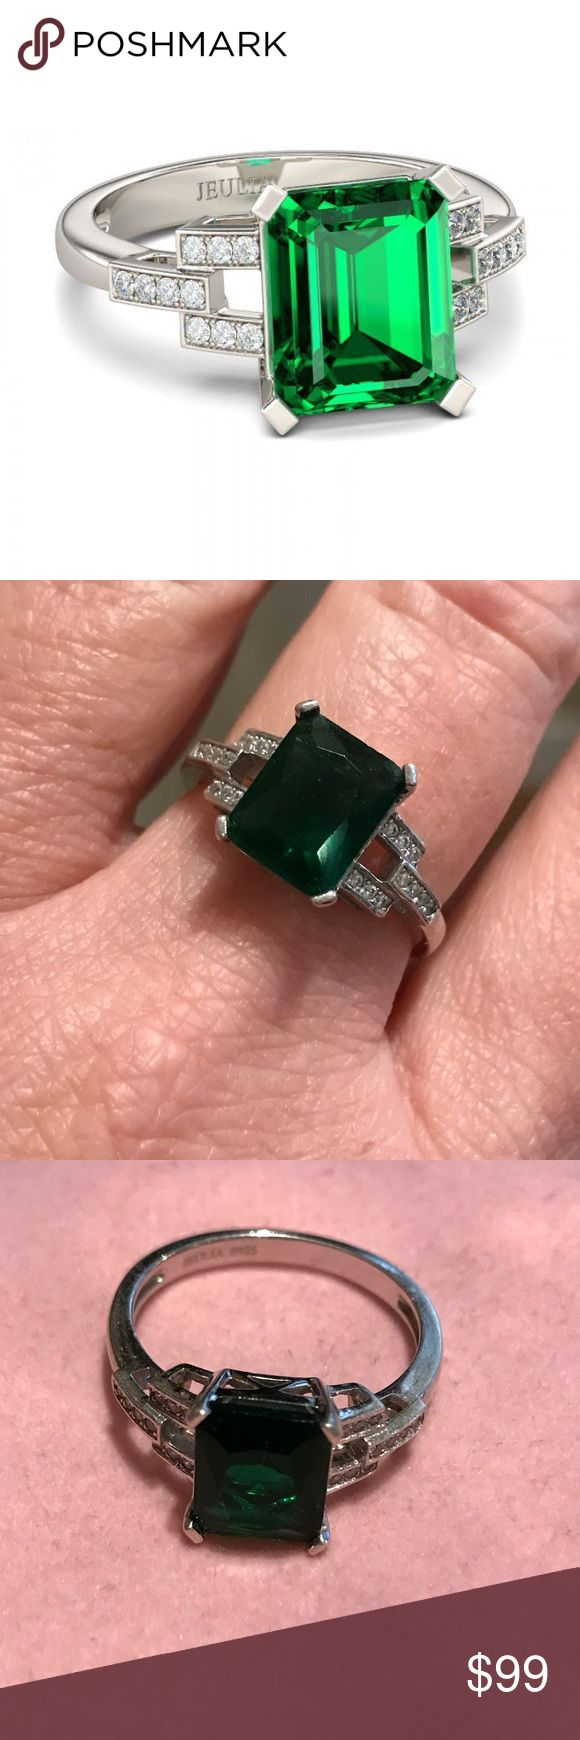 Jeulia Radiant Cut Created Emerald Setting Information > Metal:	Sterling Silver > Width:	1.40 mm > Weight:	4.01 Grams > Rhodium:	Yes. Give Platinum appearance. > Nickel Free:	yes  Primary Stone Information > Number of Stones:	1 Stone Type: 	Emerald > Stone Cut:	Radiant Stone Size:	8*10 mm > Setting Type:	Prong Nature:	Lab-Created Sidestones are 20 white cz  Sz app 9 Jewelry Rings